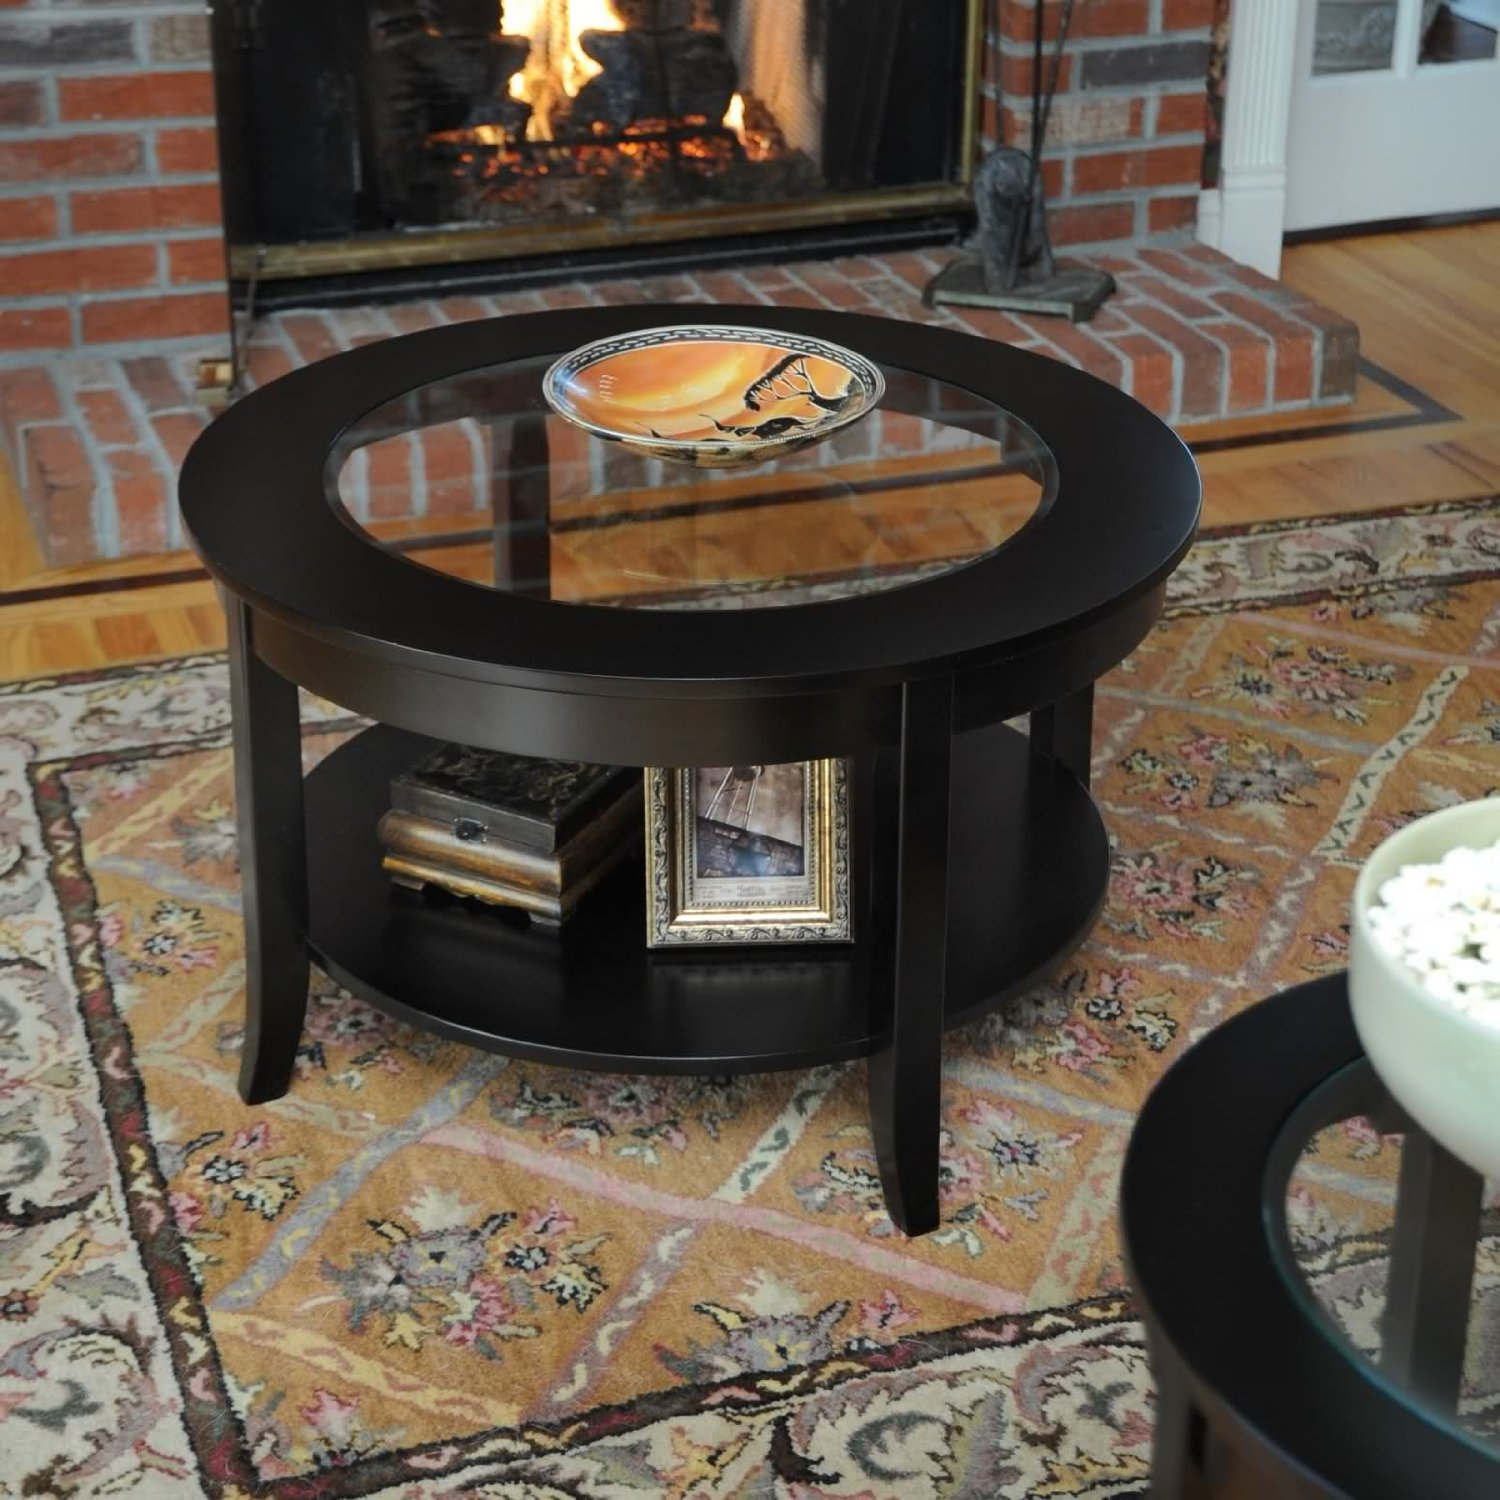 Bay Shore Collection Glass Top Round Coffee Table Black 30 Inch Coat Stands 30 Inch Round Coffee Table (View 2 of 9)